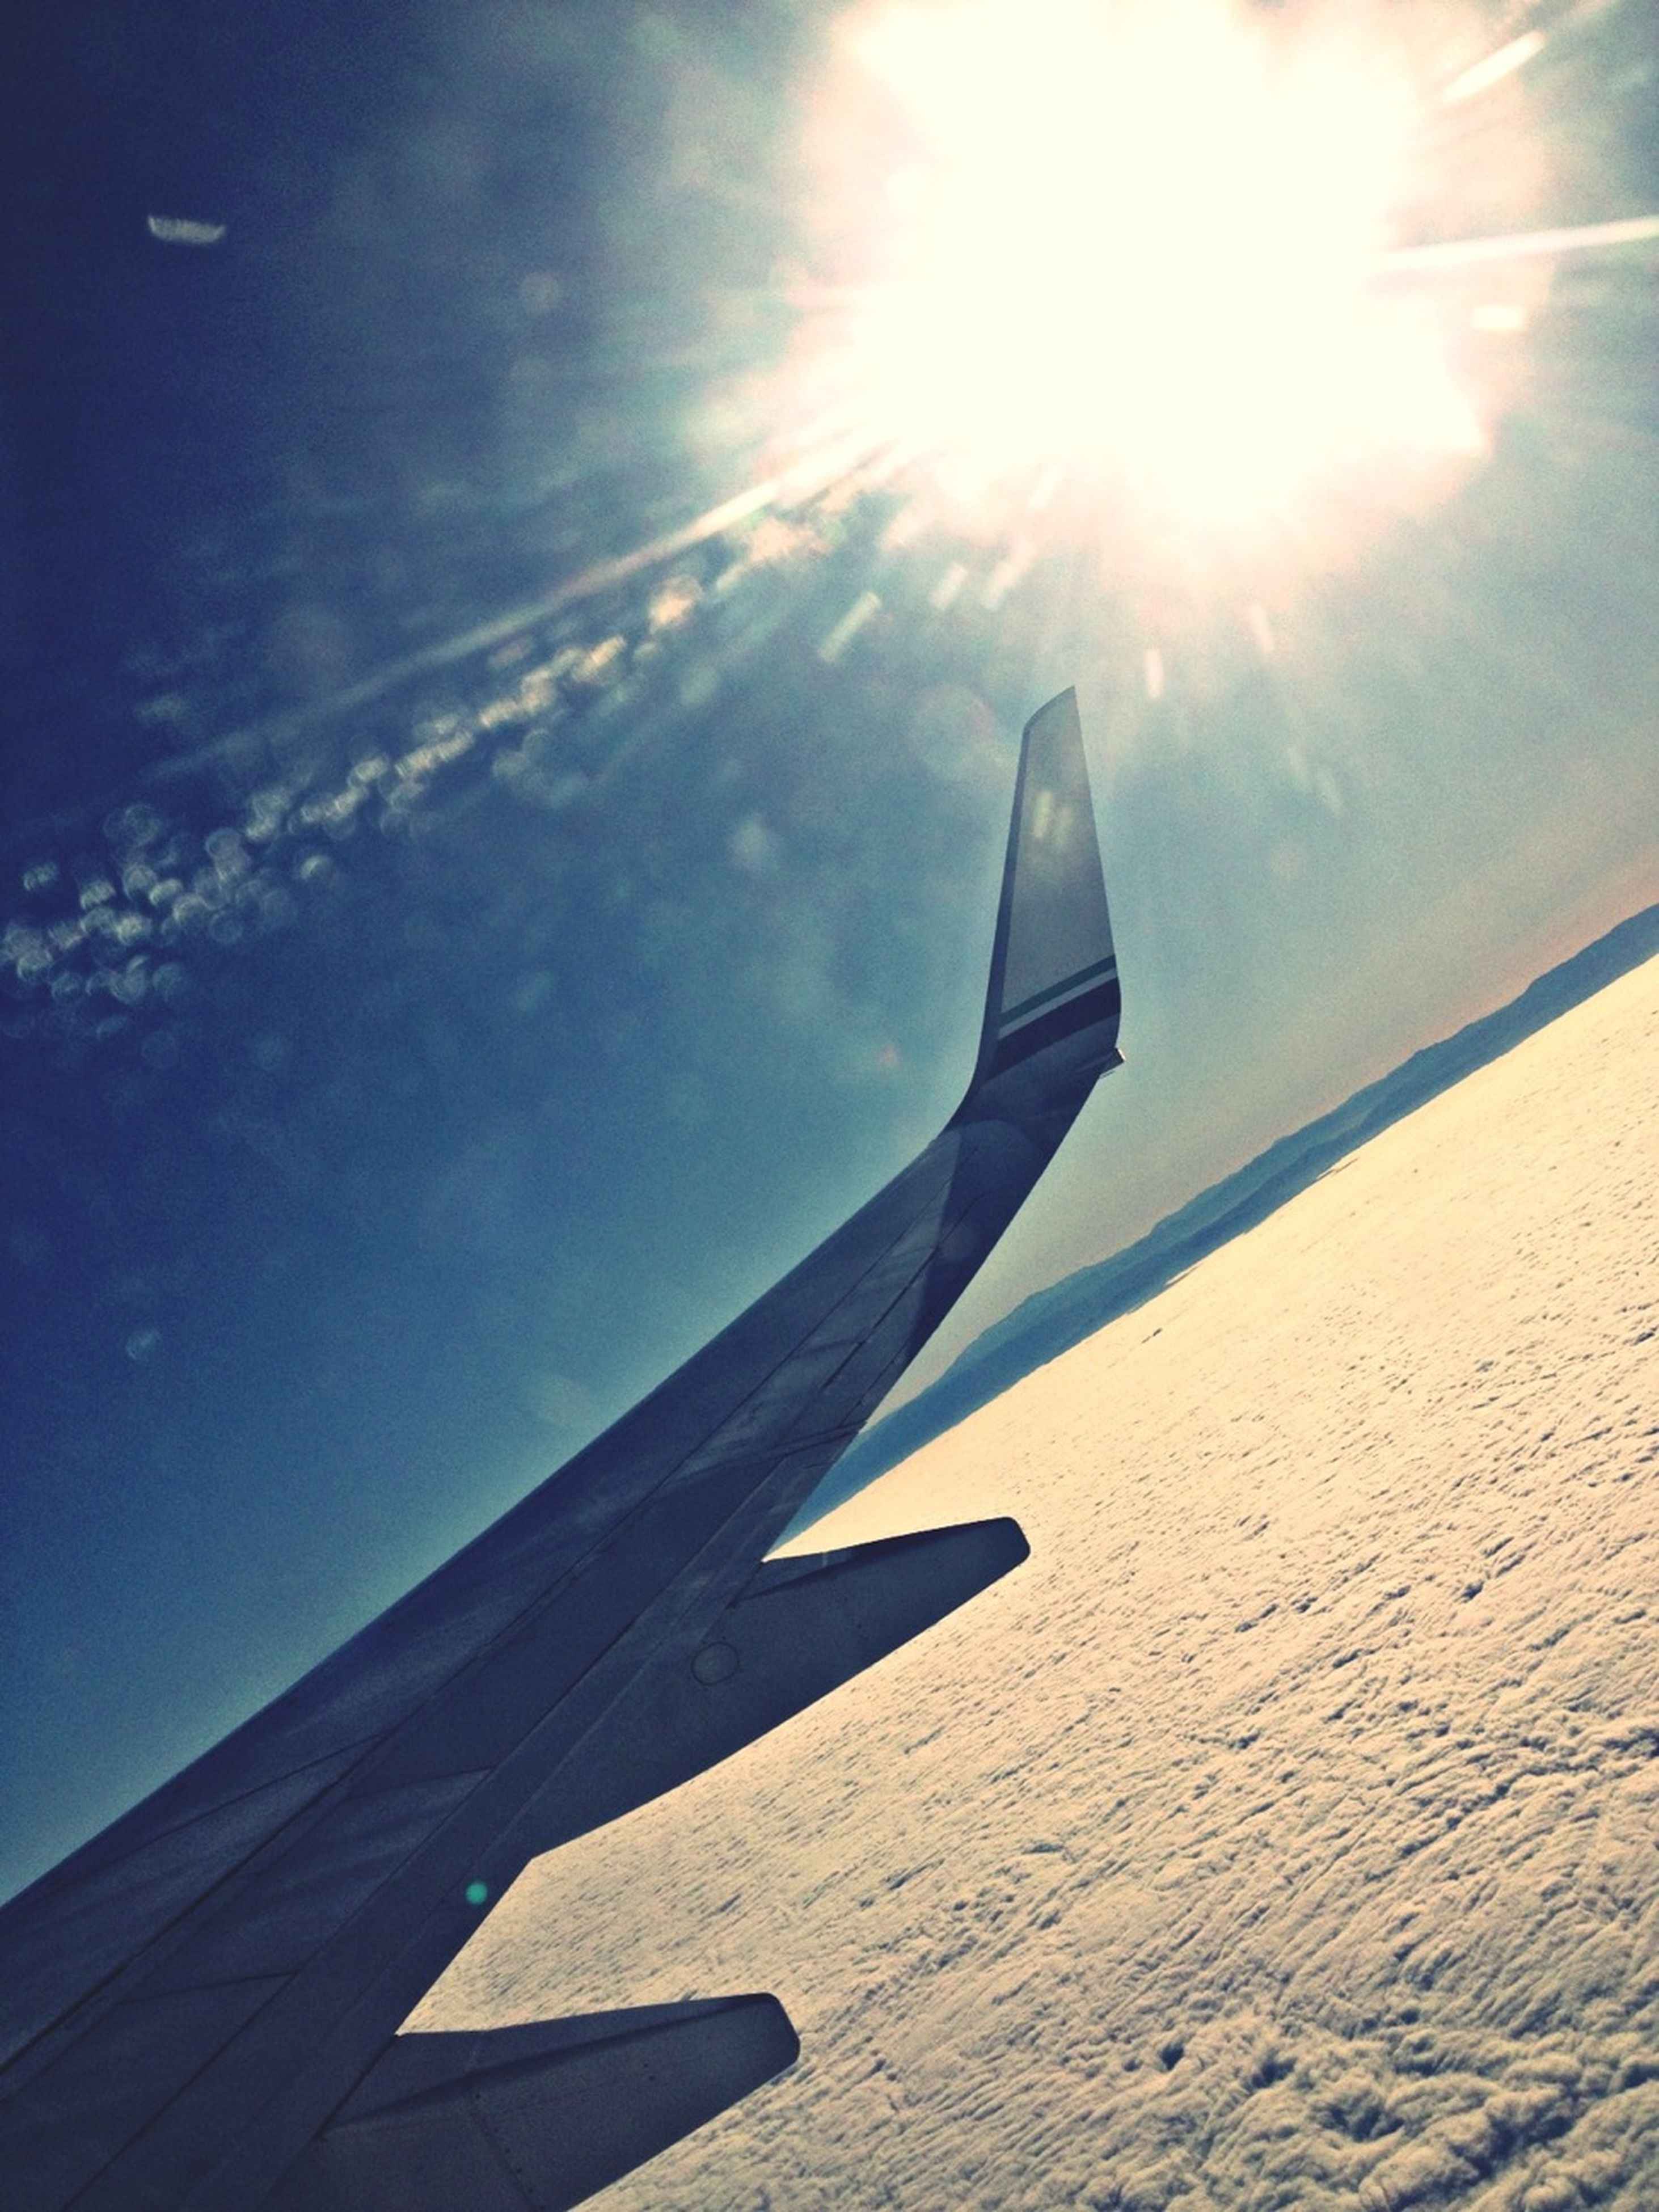 sun, sunlight, transportation, aircraft wing, sunbeam, airplane, flying, sky, lens flare, sunny, mode of transport, air vehicle, part of, low angle view, cropped, blue, travel, mid-air, journey, day